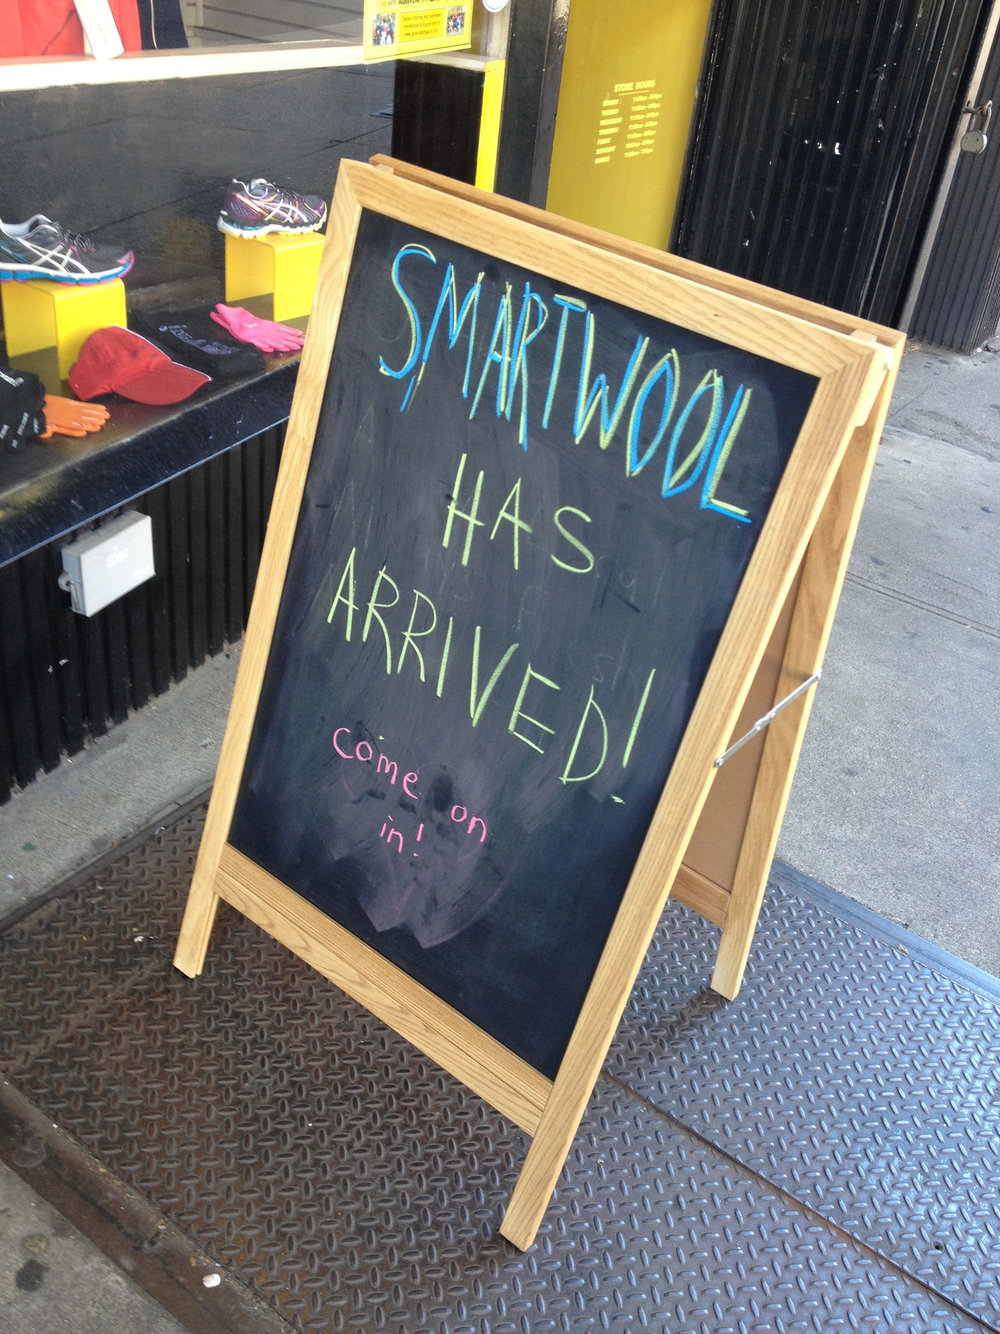 Heralding the arrival of SmartWool in Park Slope.